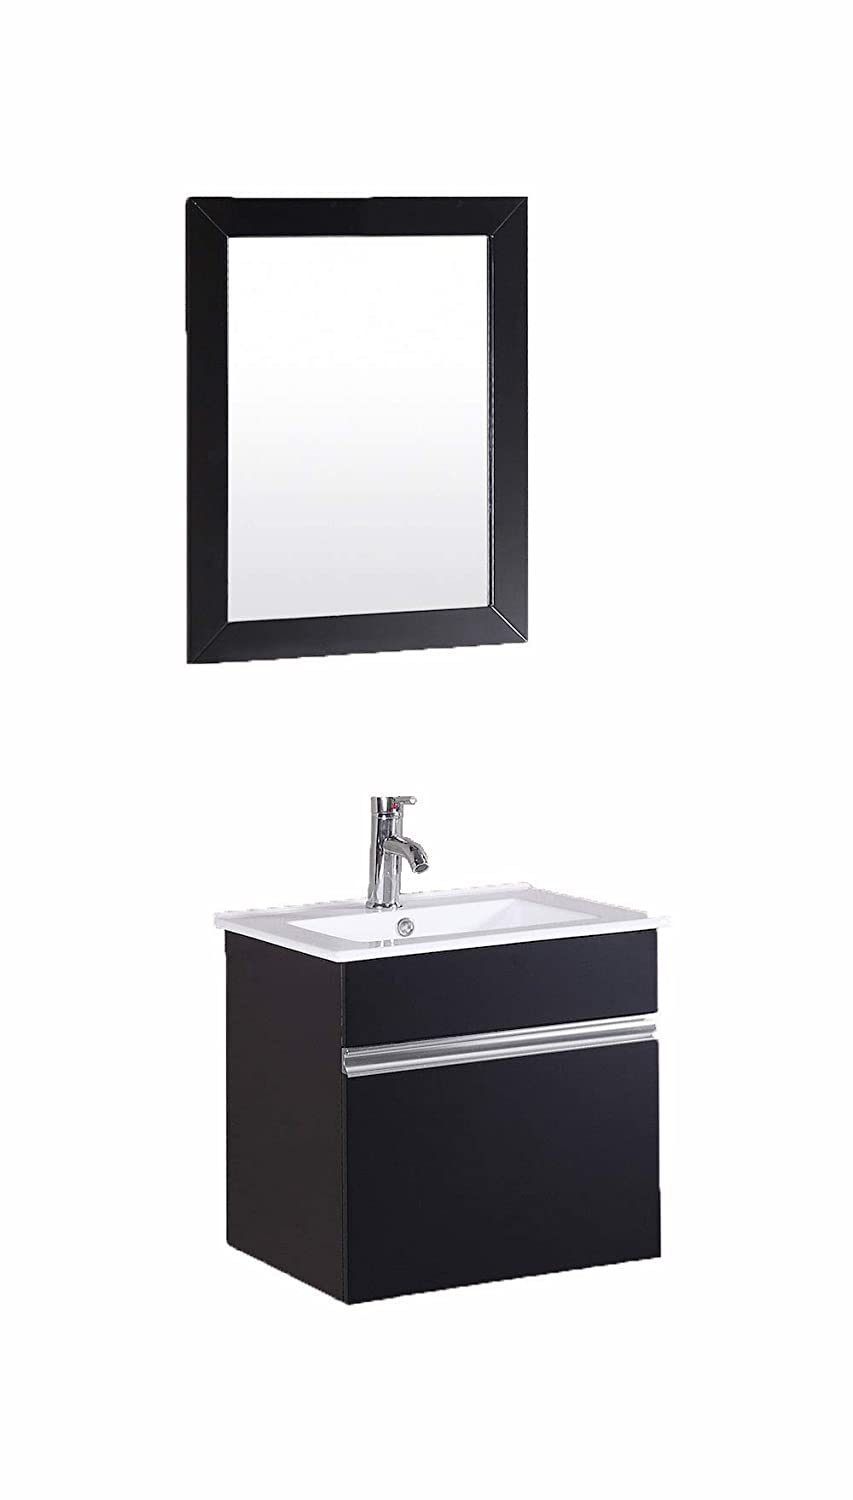 Petronius 20 wide x 18 deep x 20 high small tiny black modular wall mount hung floating modern bathroom vanity sink amazon com